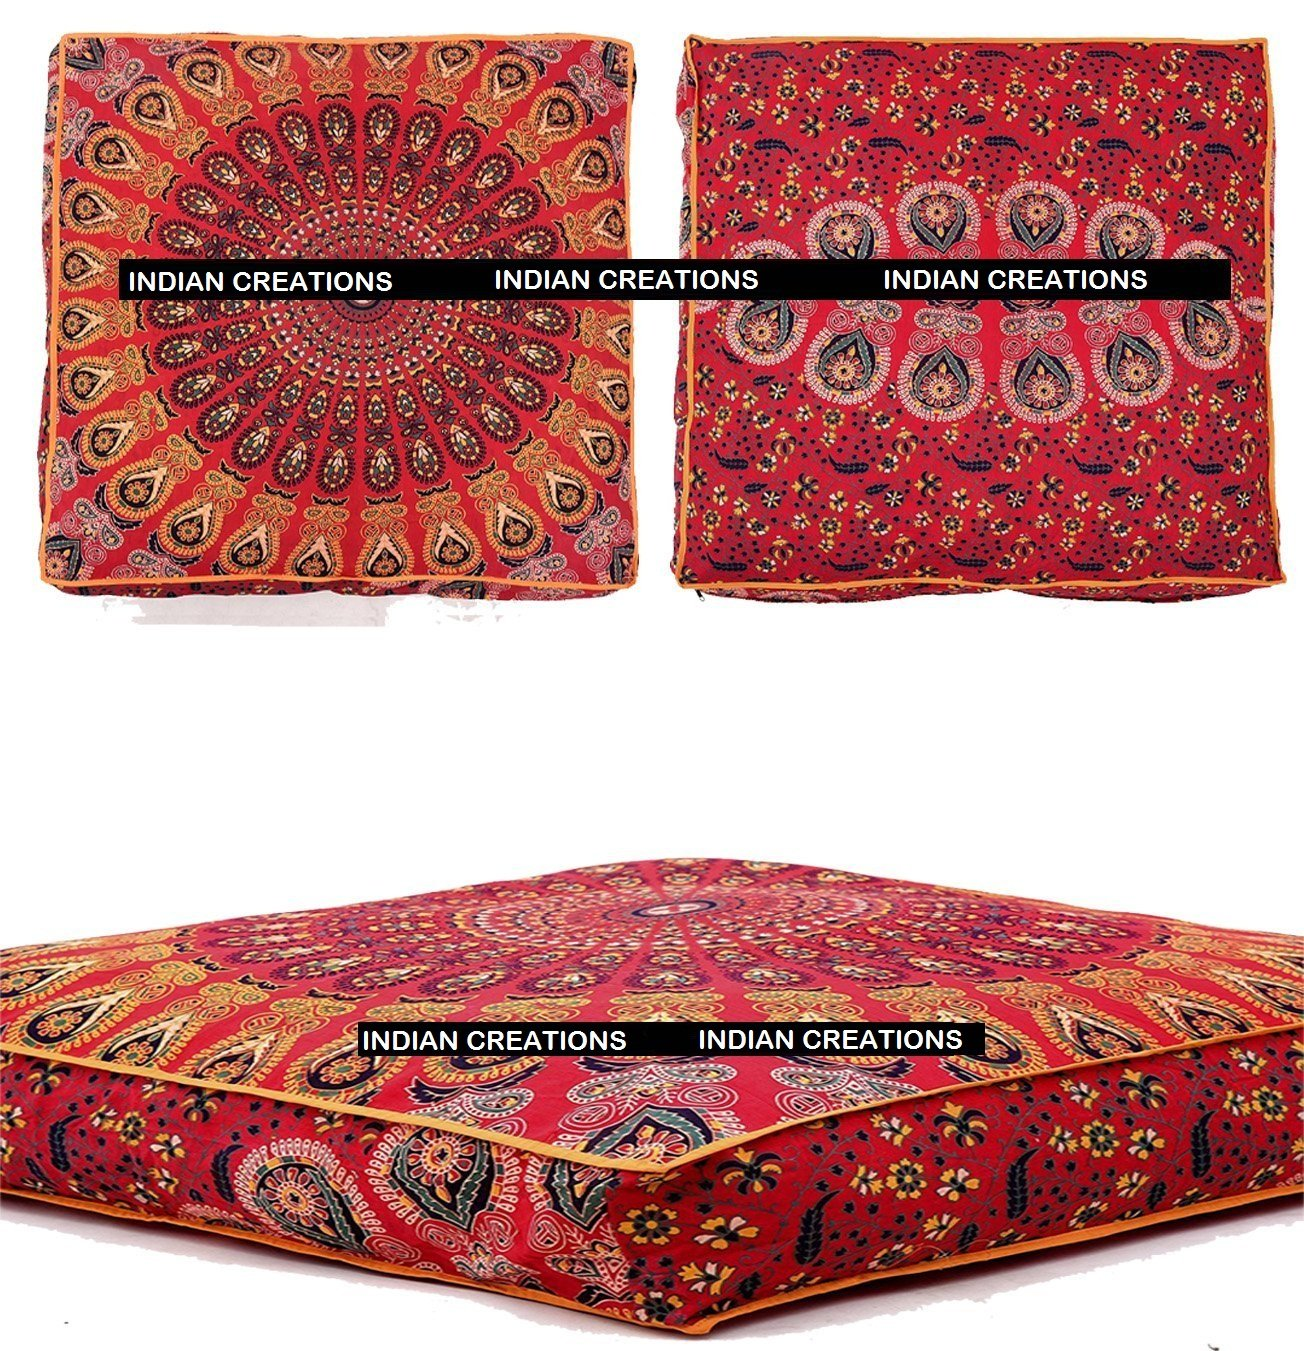 INDIAN CREATIONS - Indian Mandala Floor Pillow Square Ottoman Pouf Daybed Oversized Cushion Cover Cotton Seating Ottoman Poufs Dog / Pets Bed (Red)